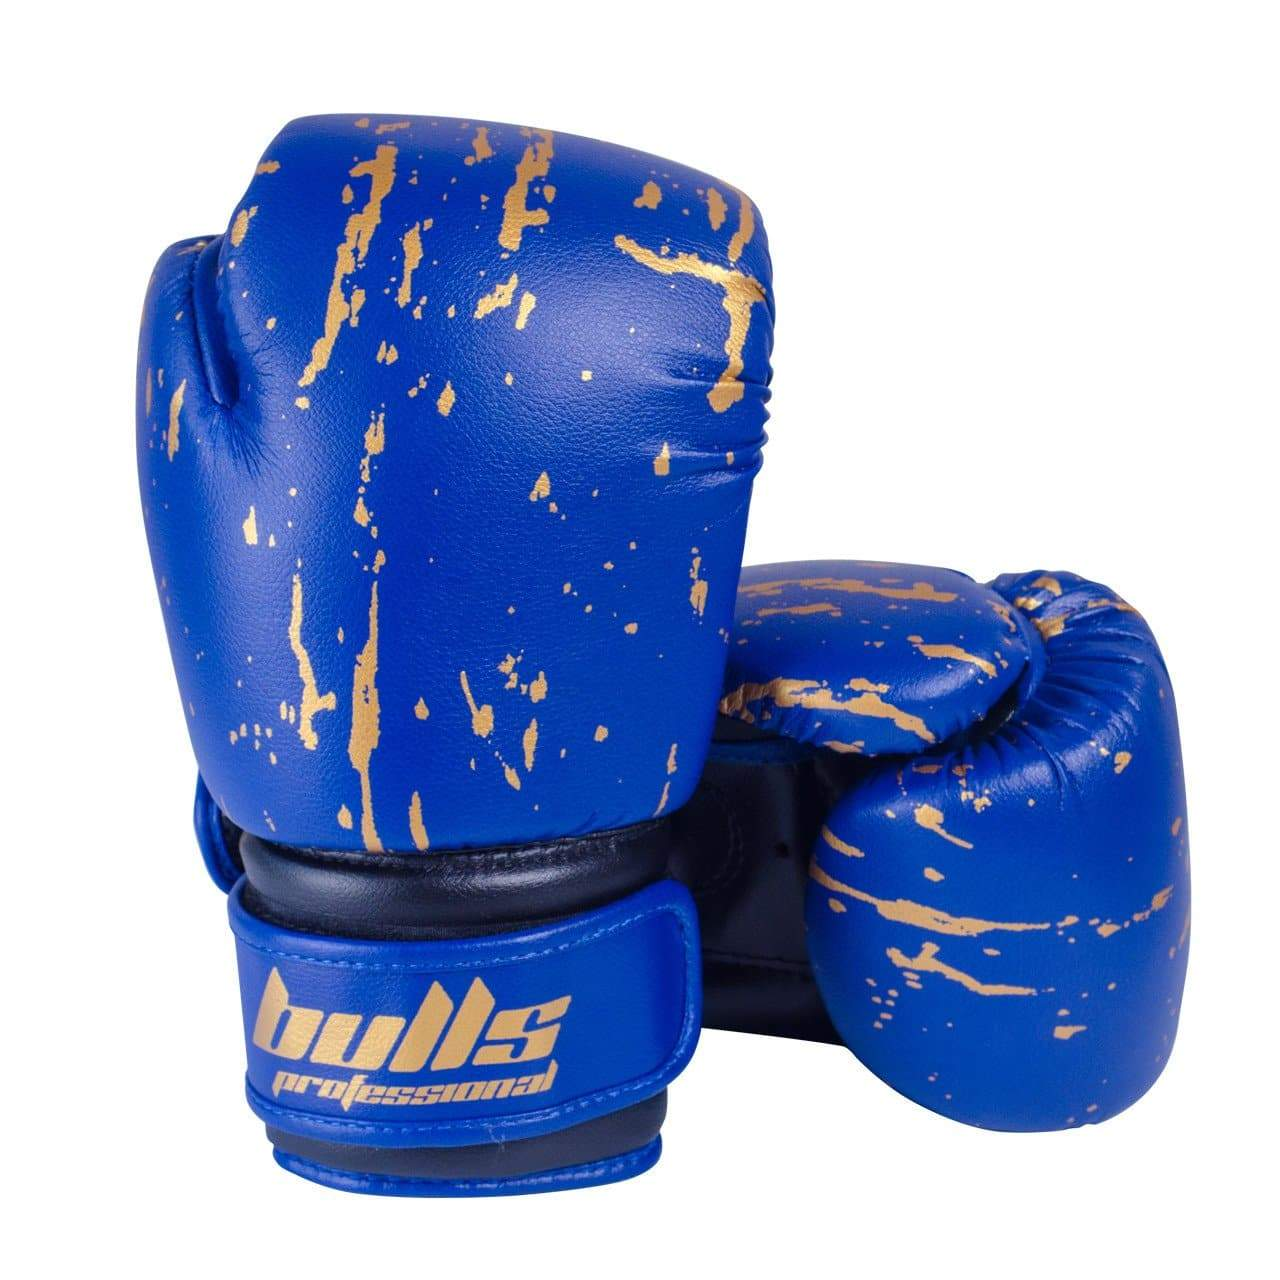 Bulls Professional Action Boxing Gloves - Blue/Black